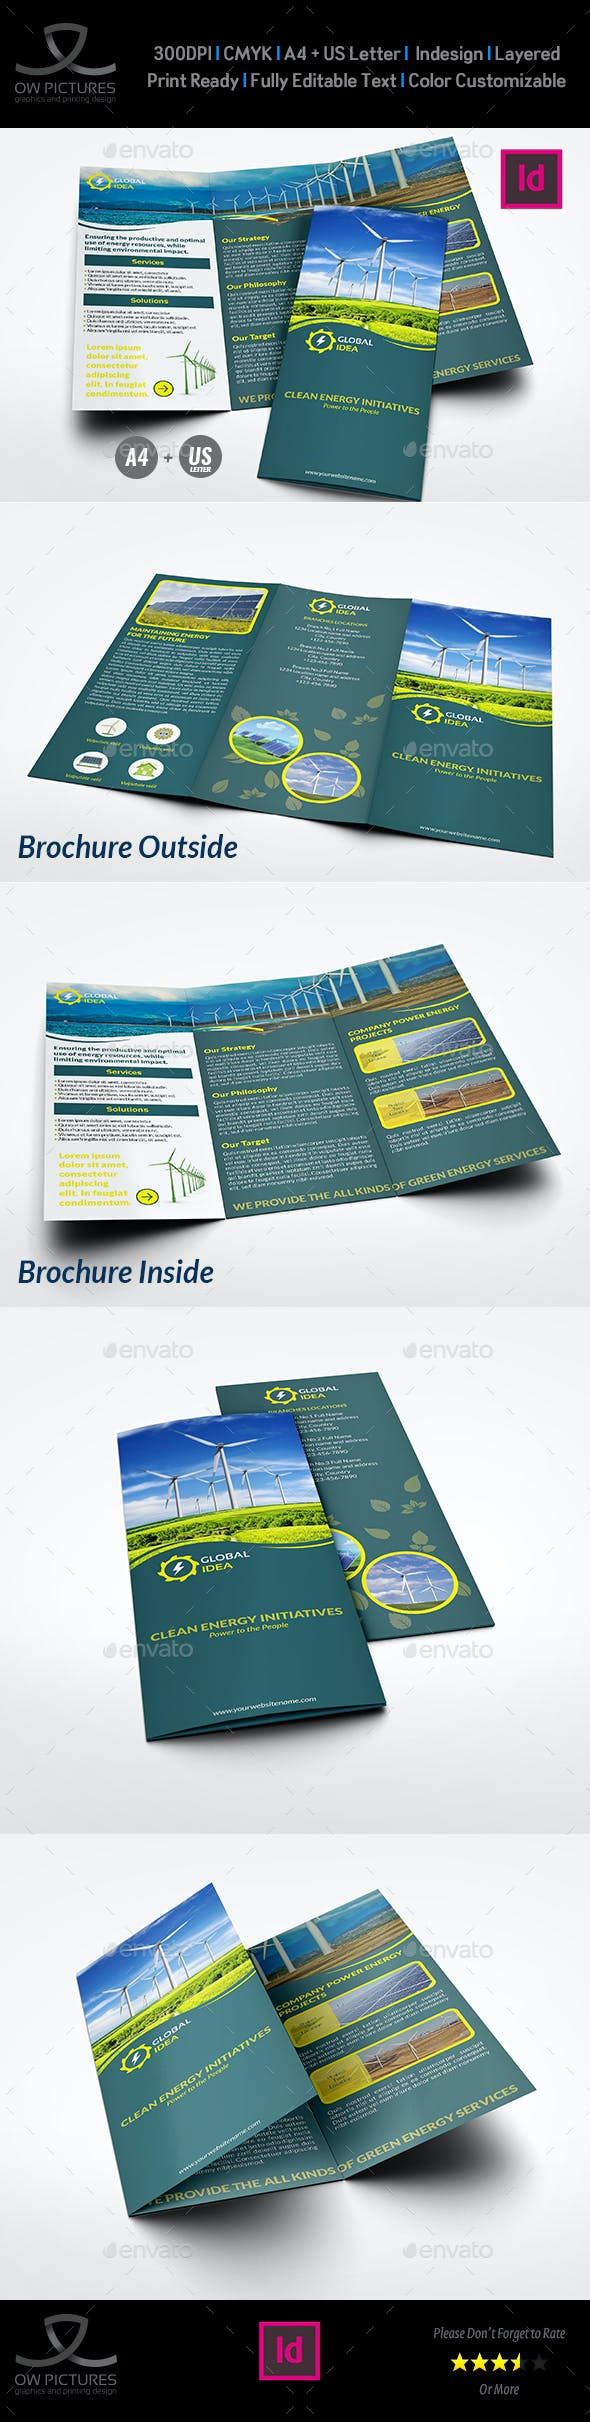 power energy services tri fold brochure template by owpictures